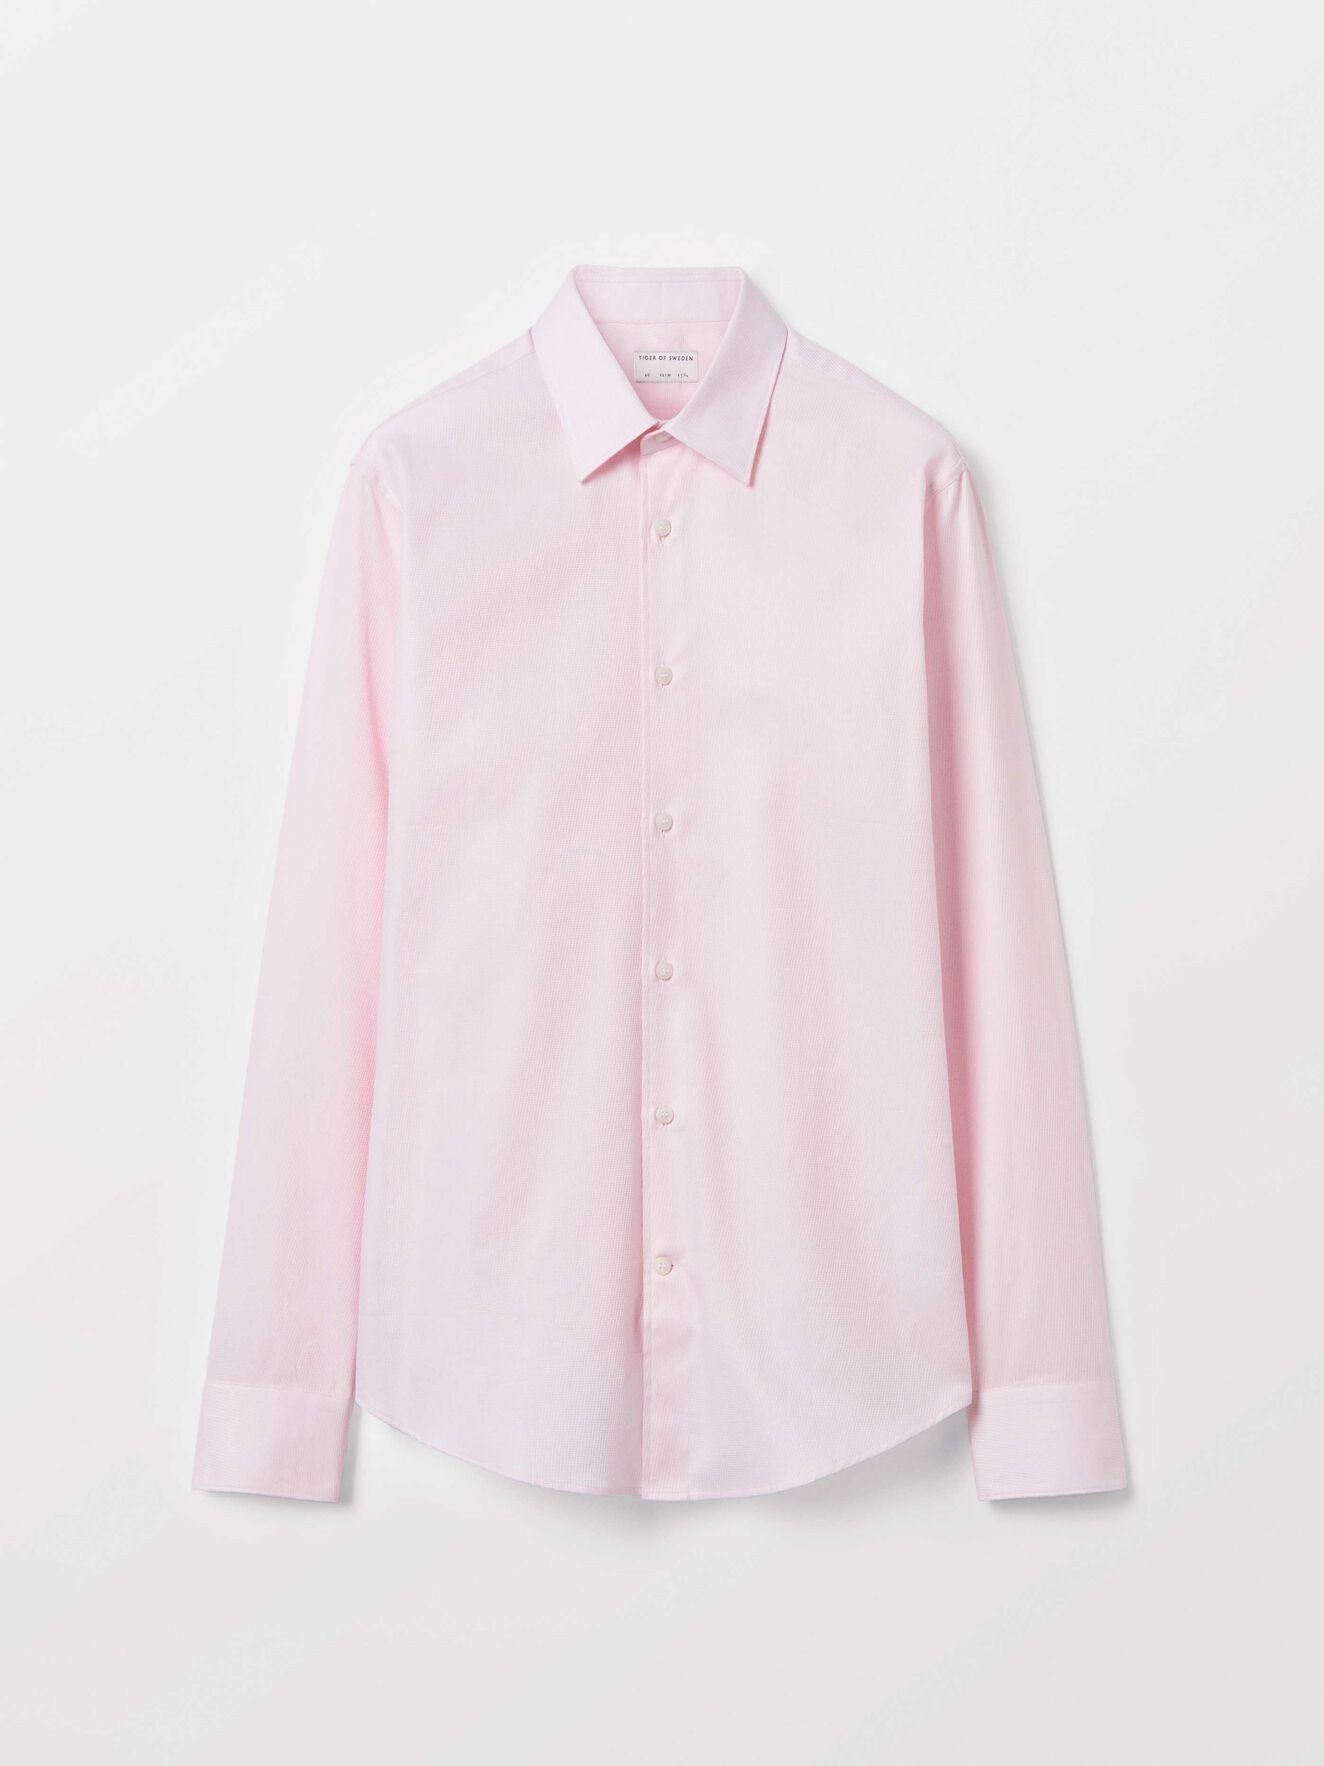 Farrell Shirt in Chintz Rose from Tiger of Sweden